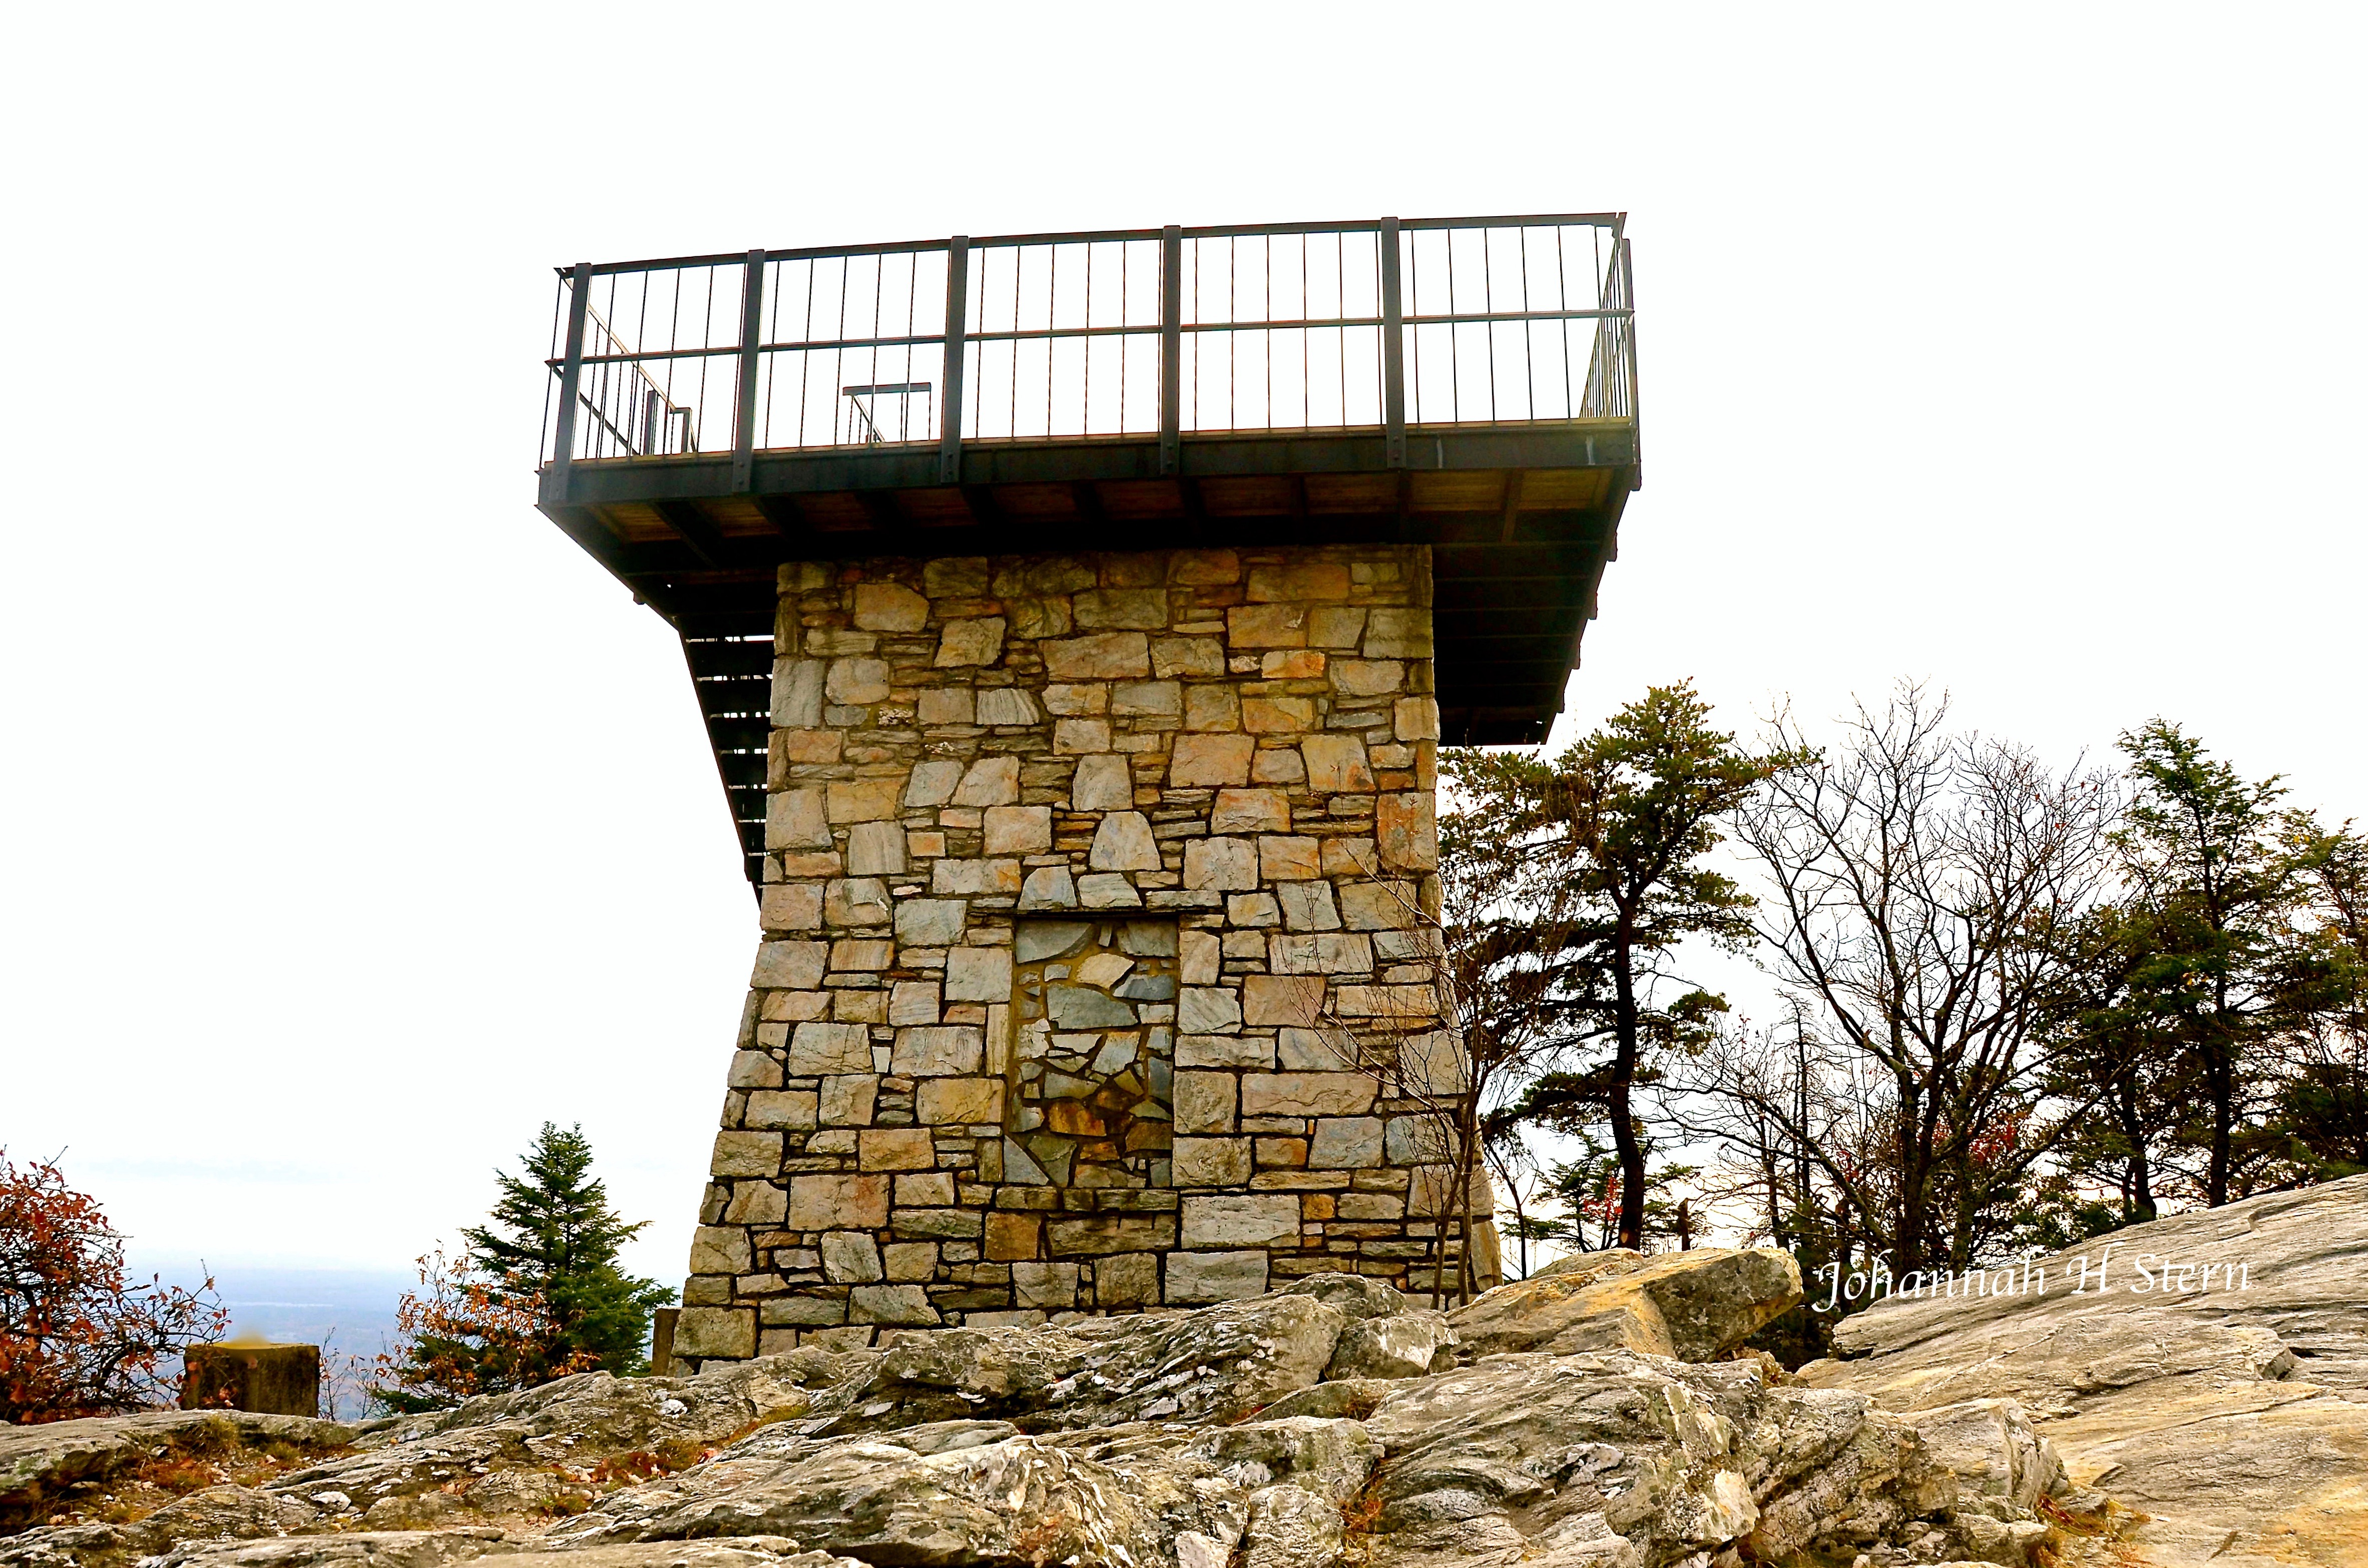 Lookout Tower - Moore's Knob in Hanging Rock State Park. Photo by Johanna H. Stern.